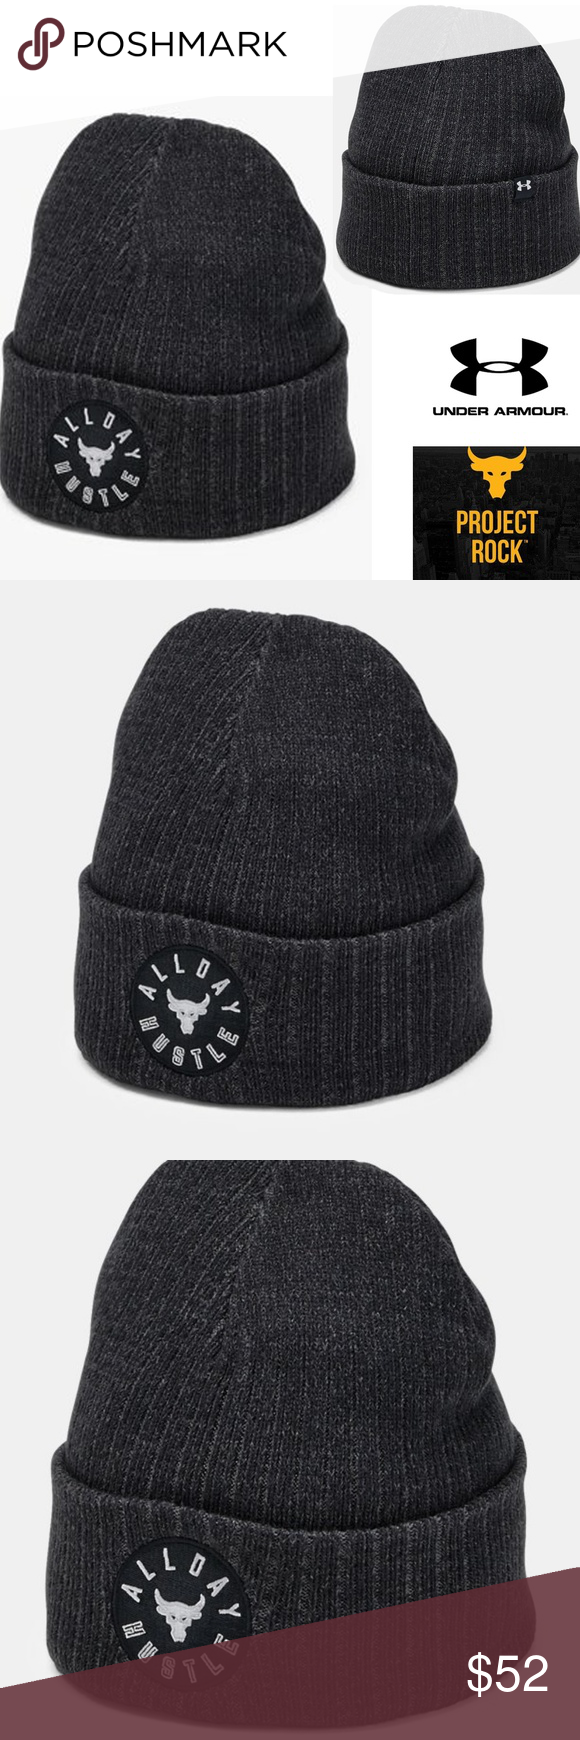 Under Armour Project Rock Beanie Brand New with Tags Under Armour Project  Rock All Day Hustle Beanie UA Men s SOLD OUT Under Armour Accessories Hats 8d14253bd85e